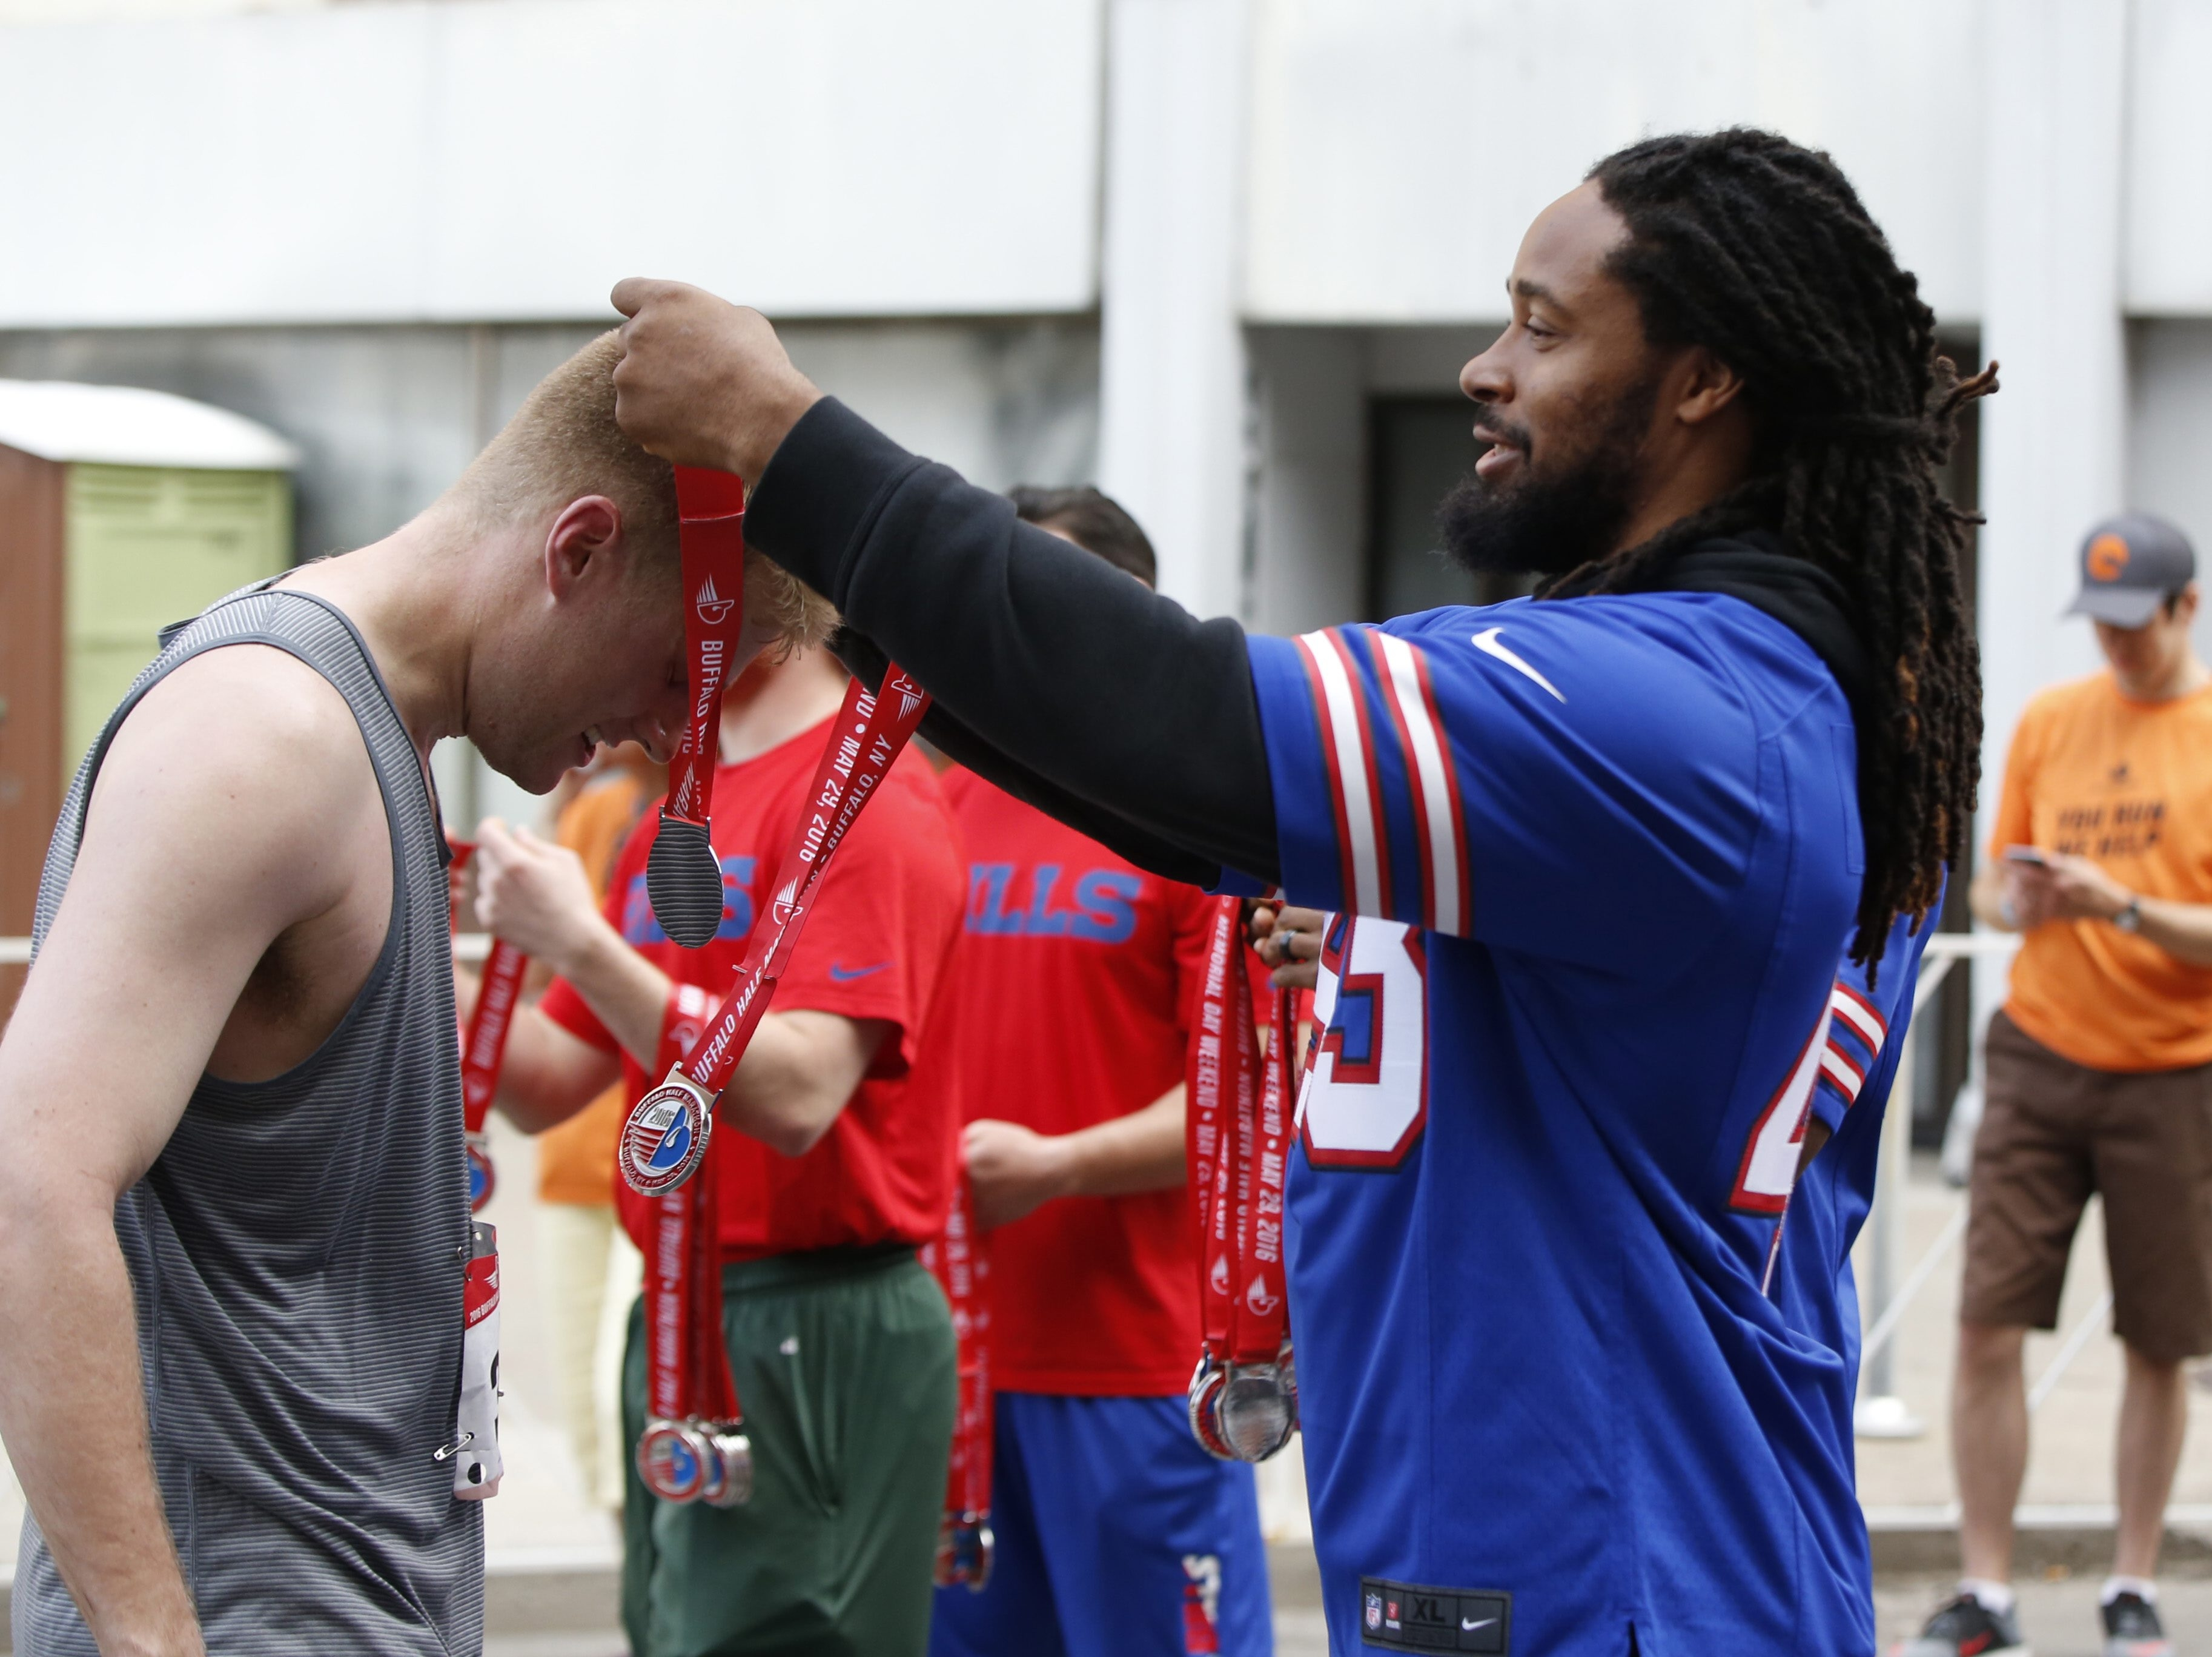 Phillip Thomas of the Bills presents a medal to one of the finishers of Sunday's Buffalo Marathon.